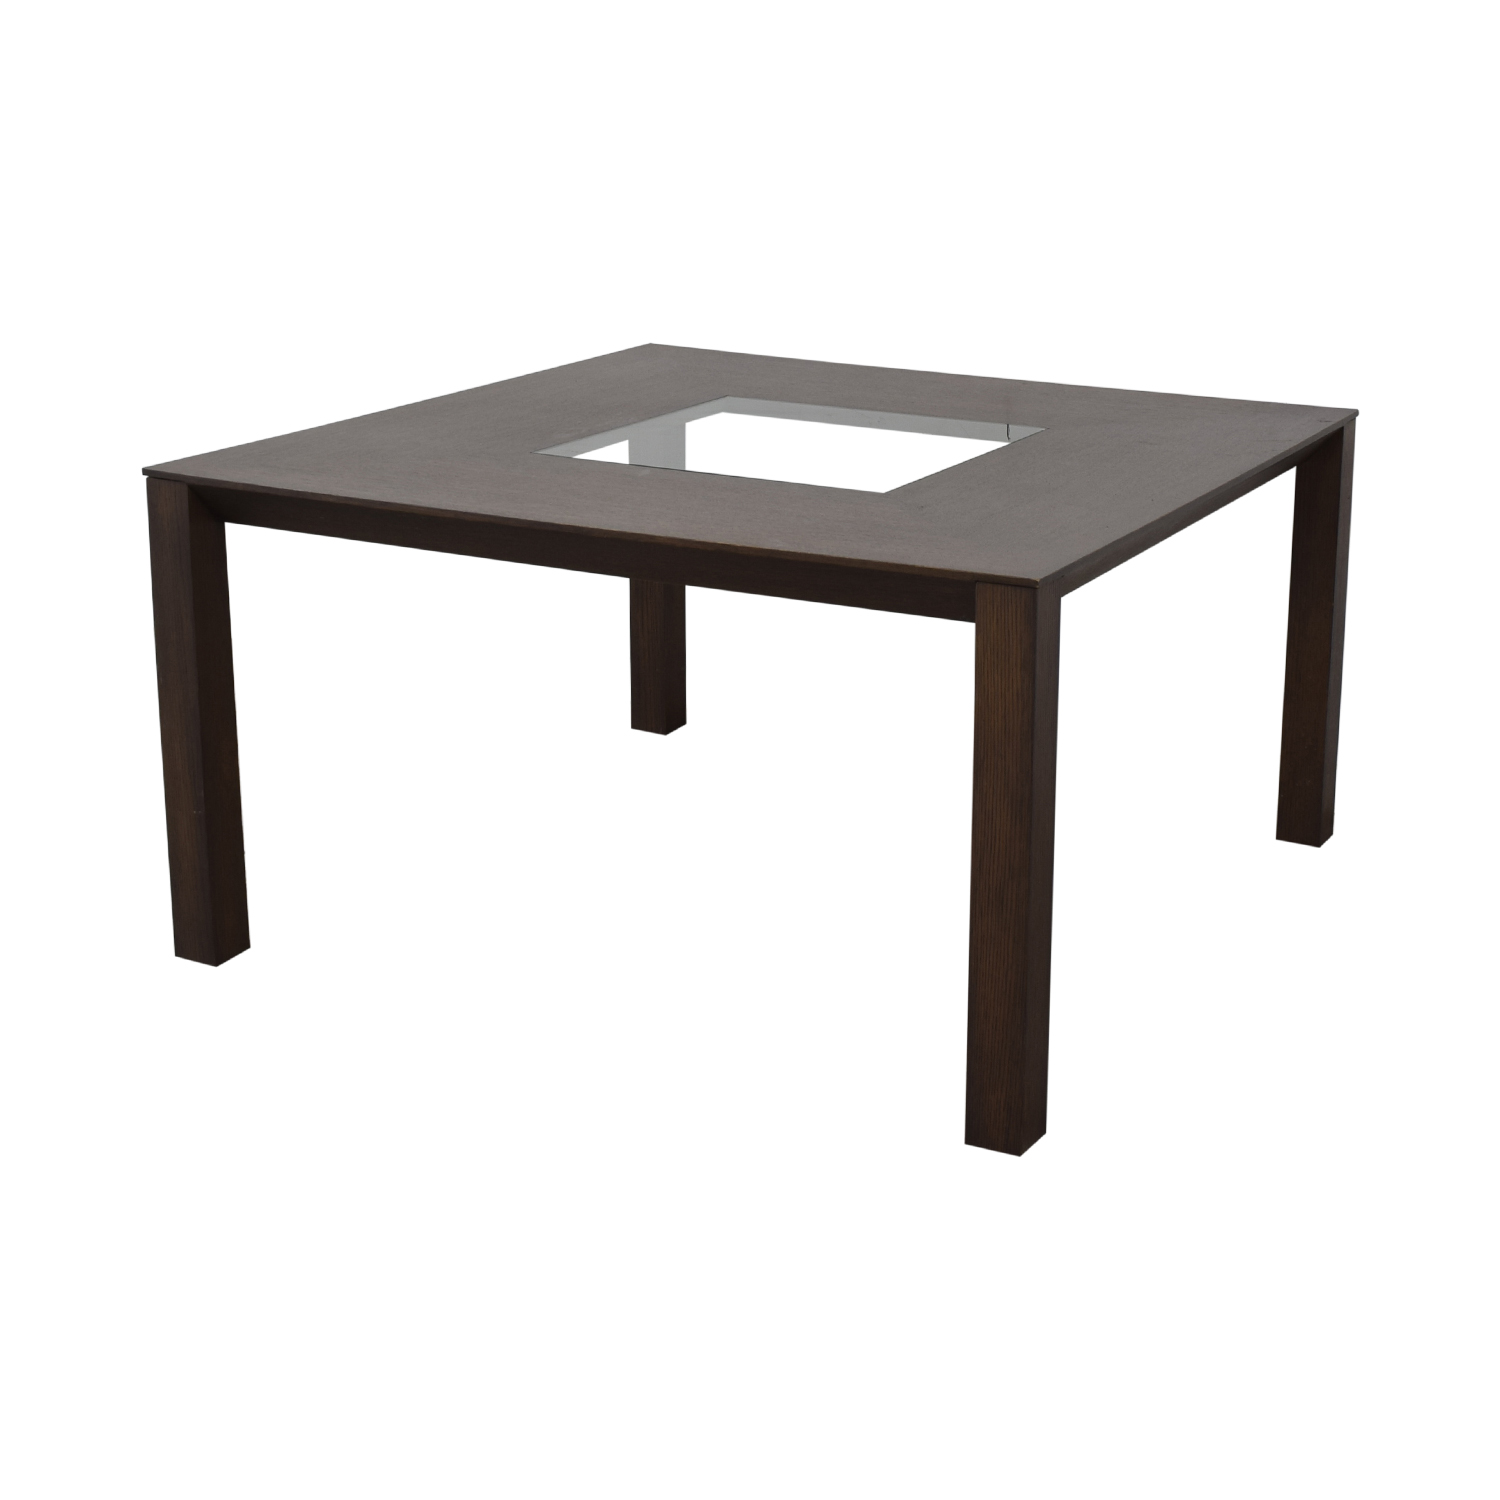 buy Planum Planum Furniture Square Dining Table with Glass Inlay online